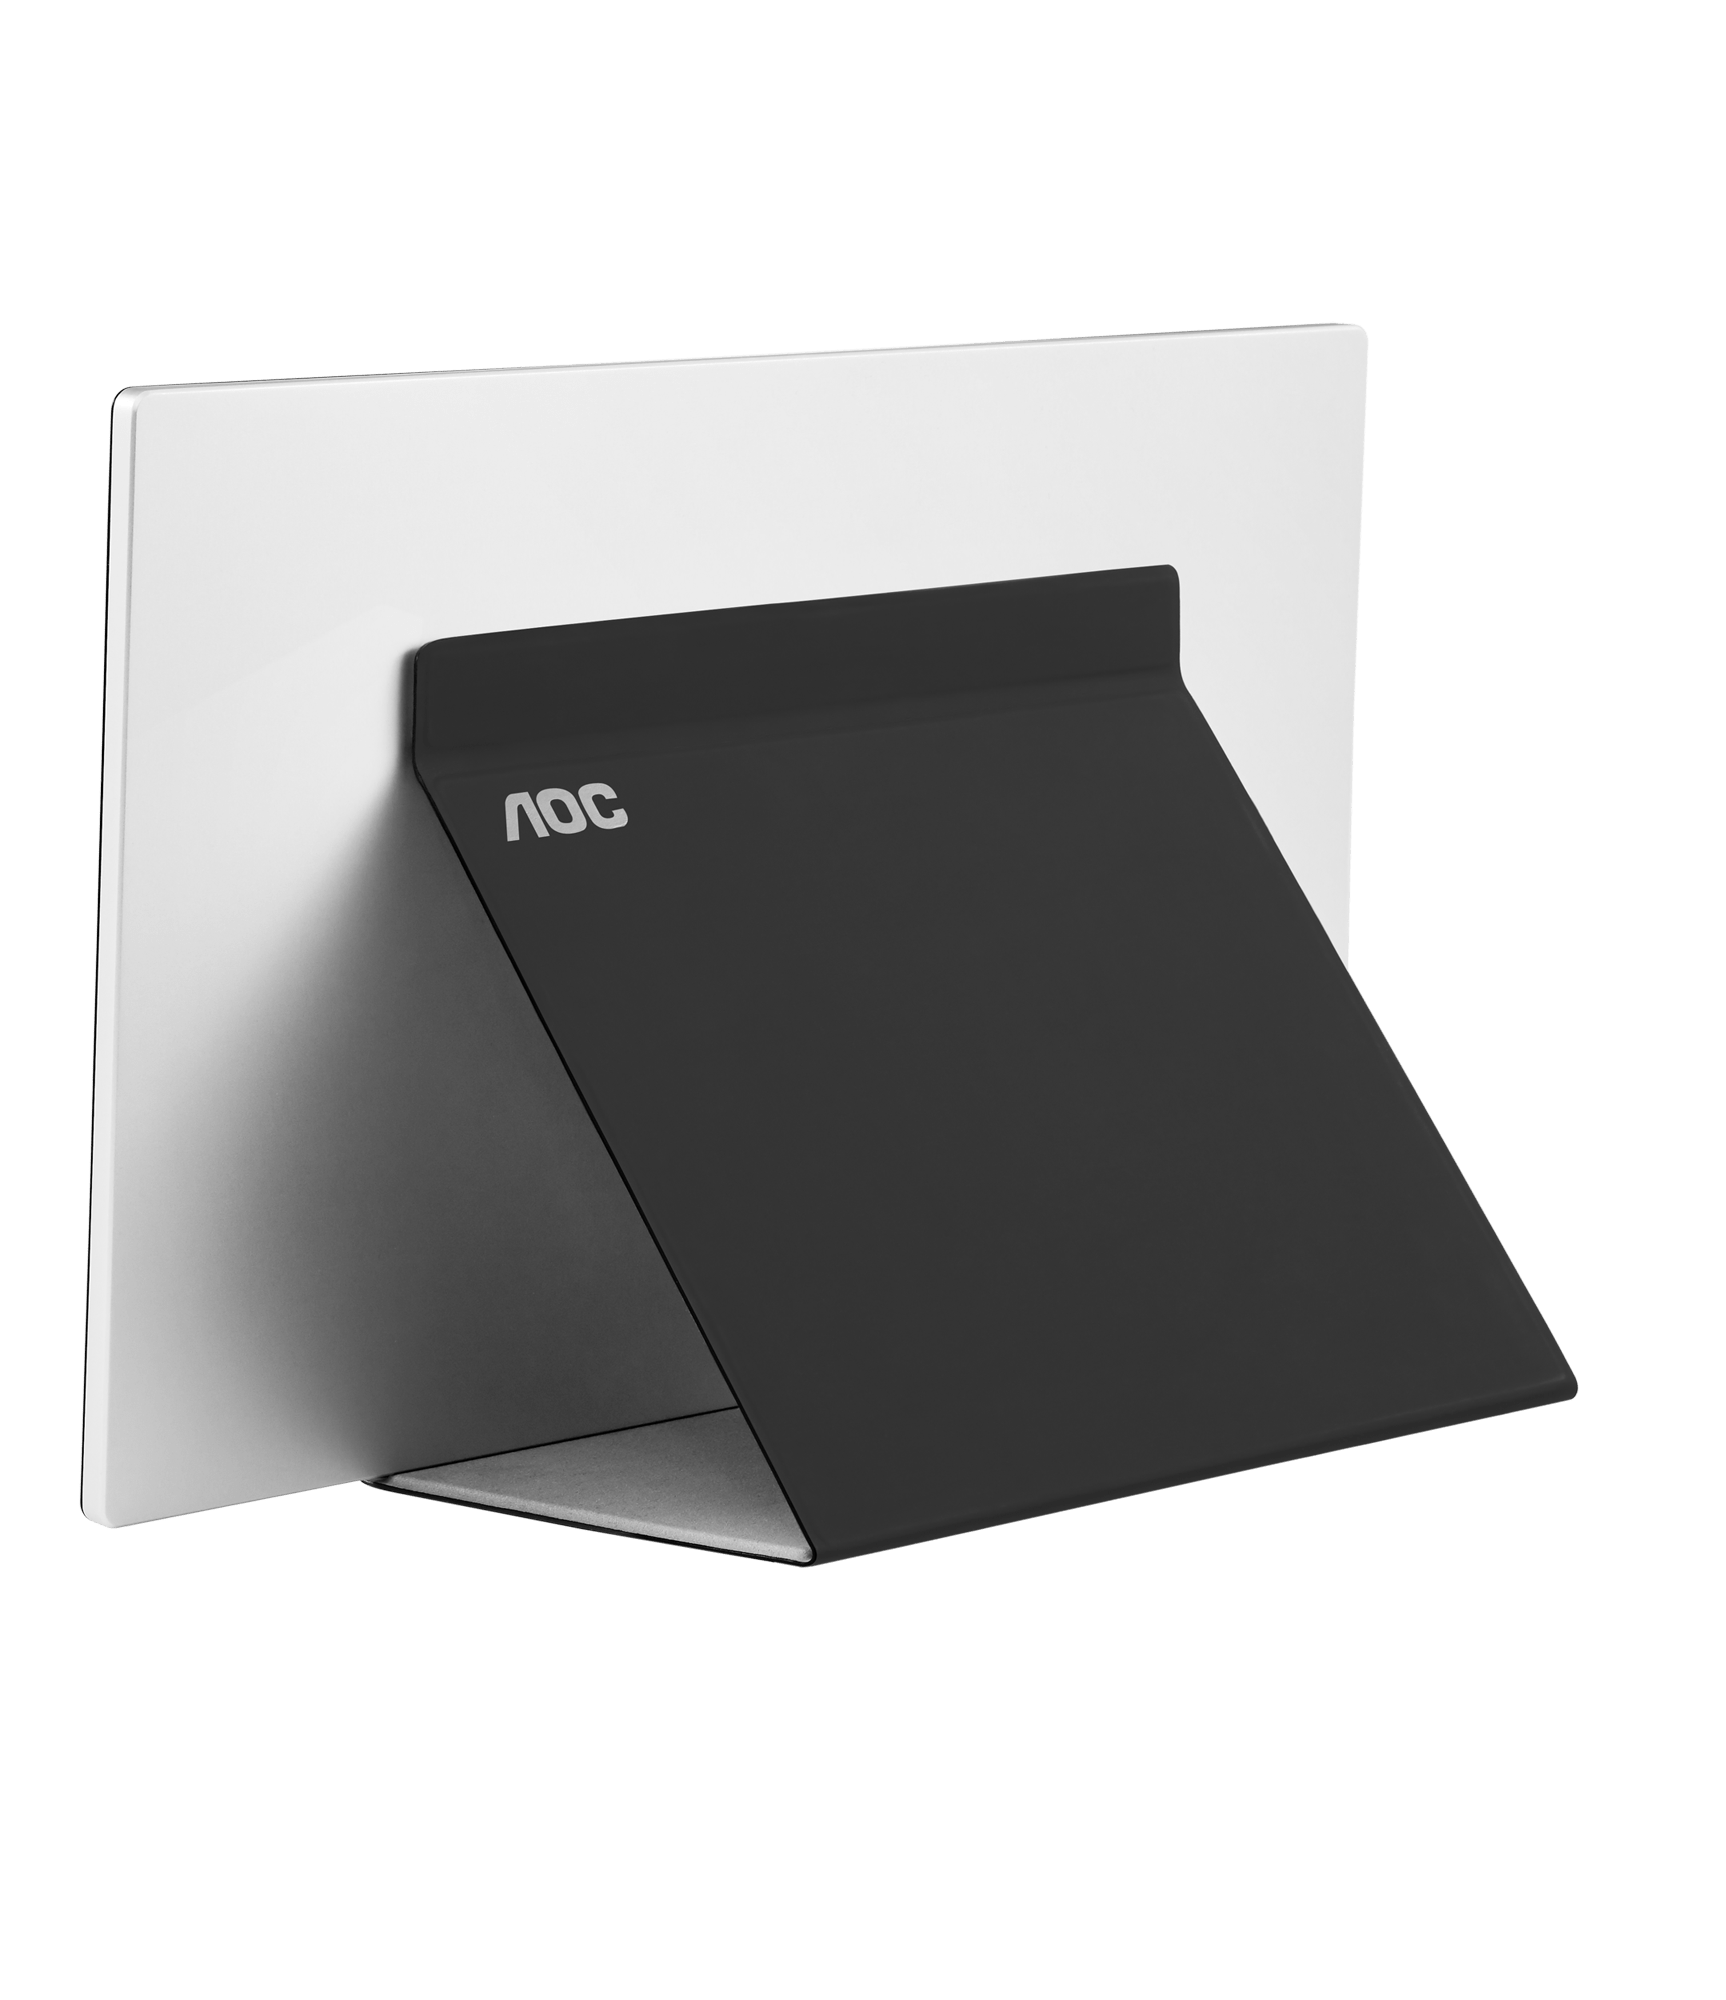 """AOC I1601P: new 15.6 """"portable monitor with hybrid USB connection"""